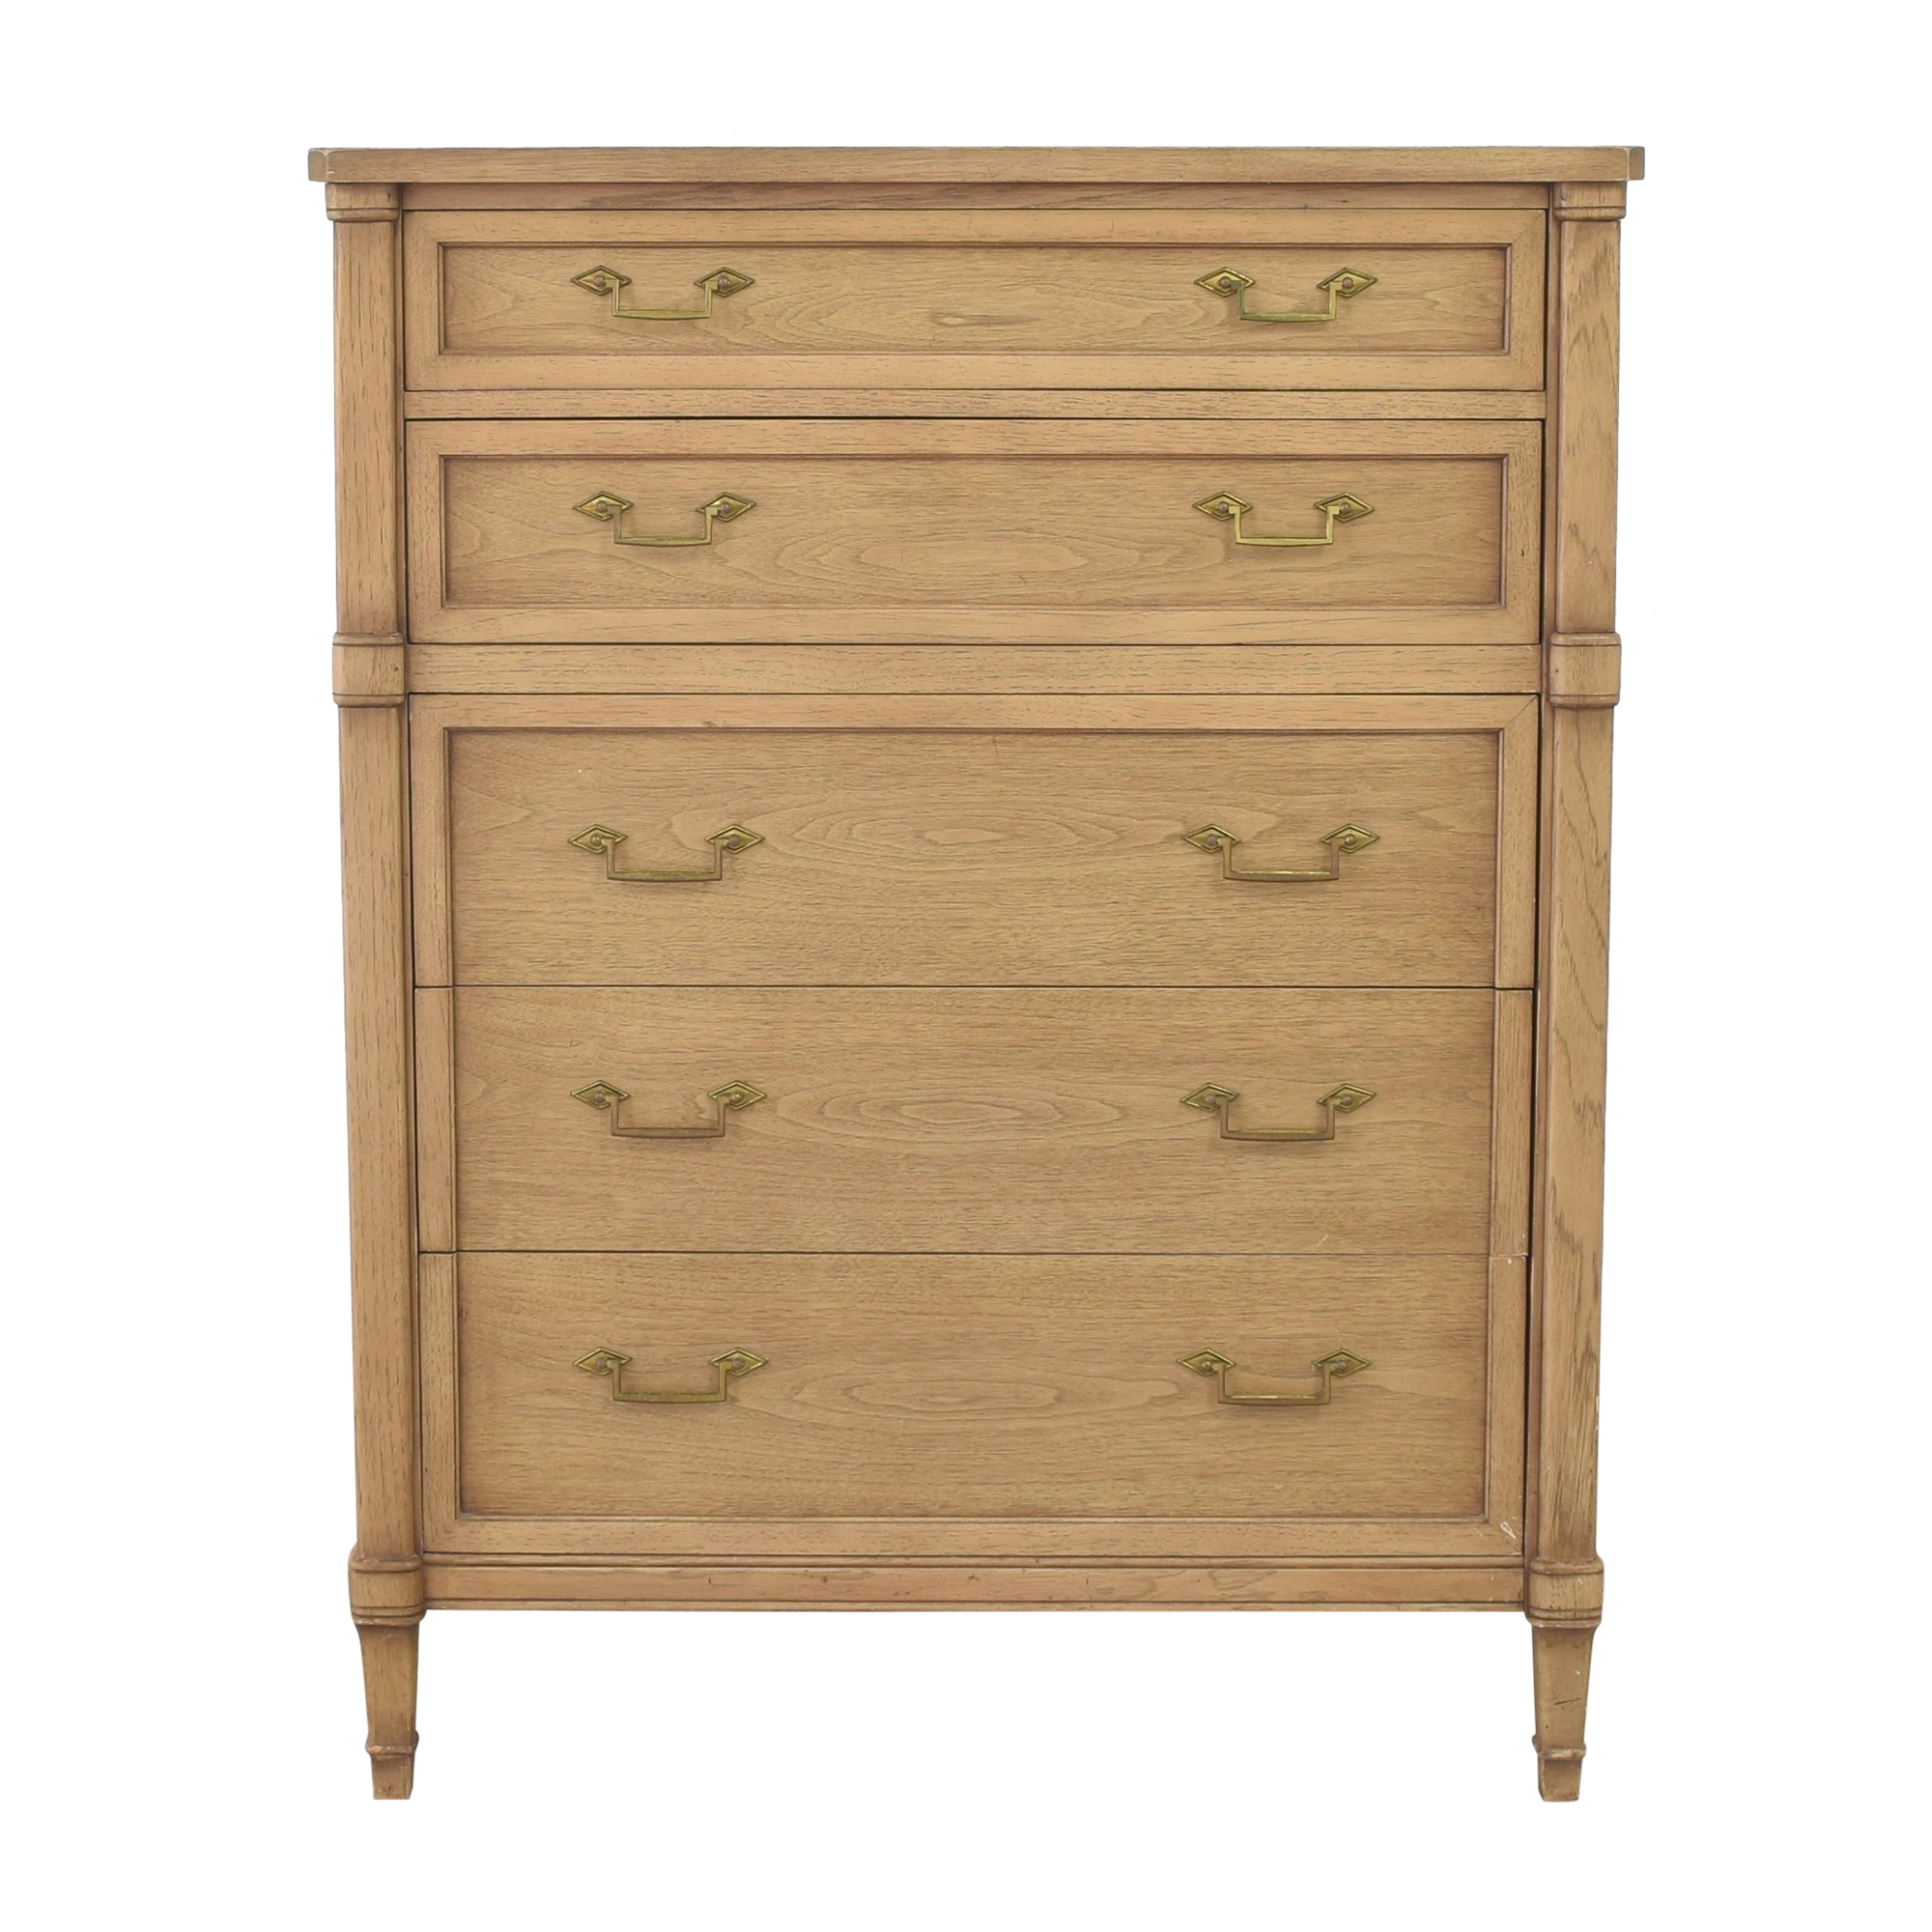 Drexel Drexel Tall Five Drawer Dresser ma